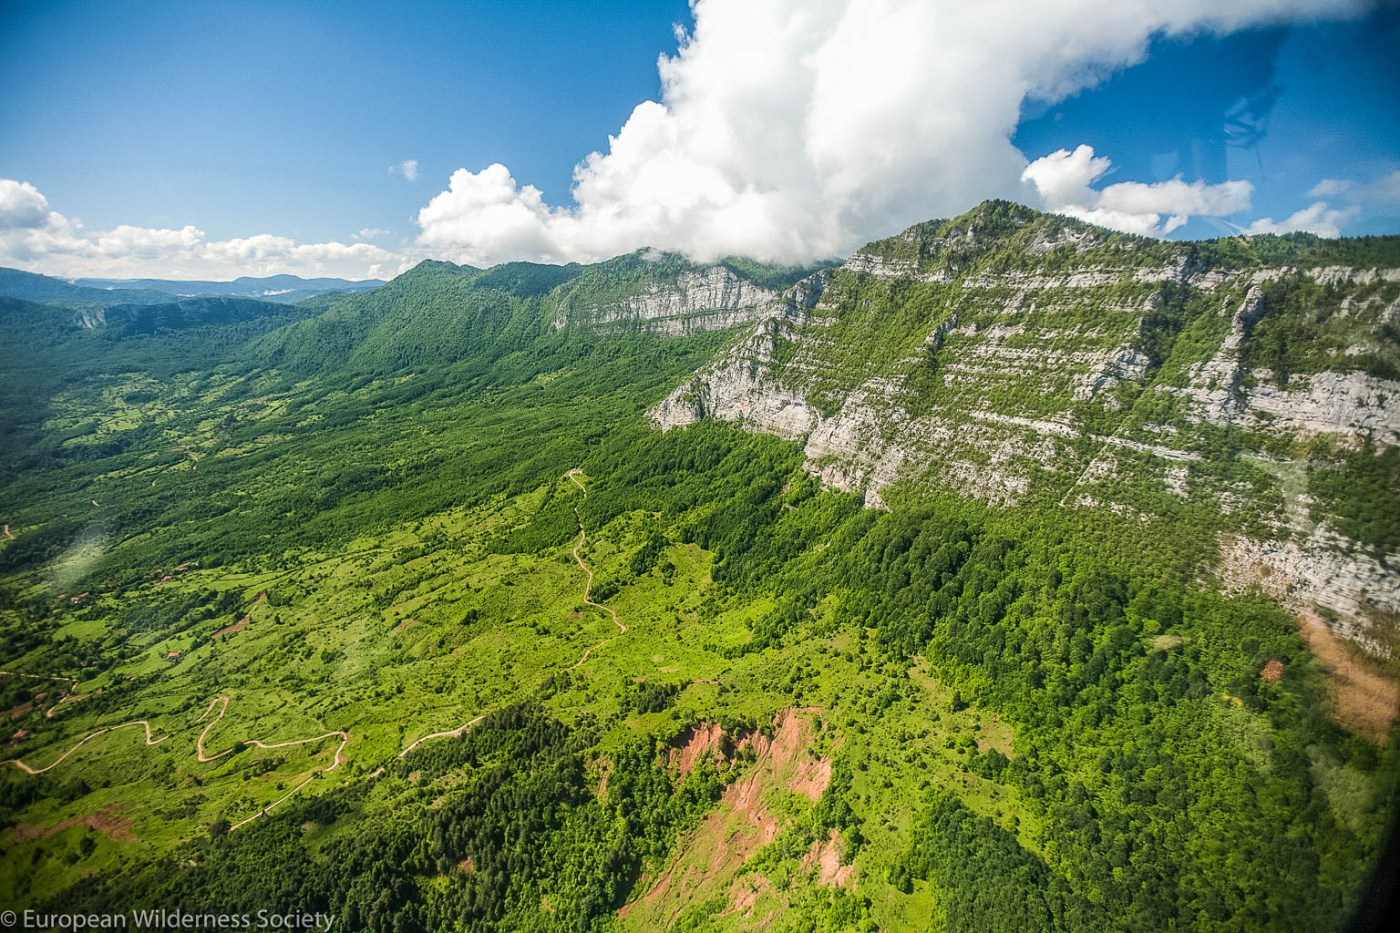 1. Küre Wilderness is wel known because of intact forests, wildlife and endemic plant species.jpg - © European Wilderness Society CC BY-NC-ND 4.0